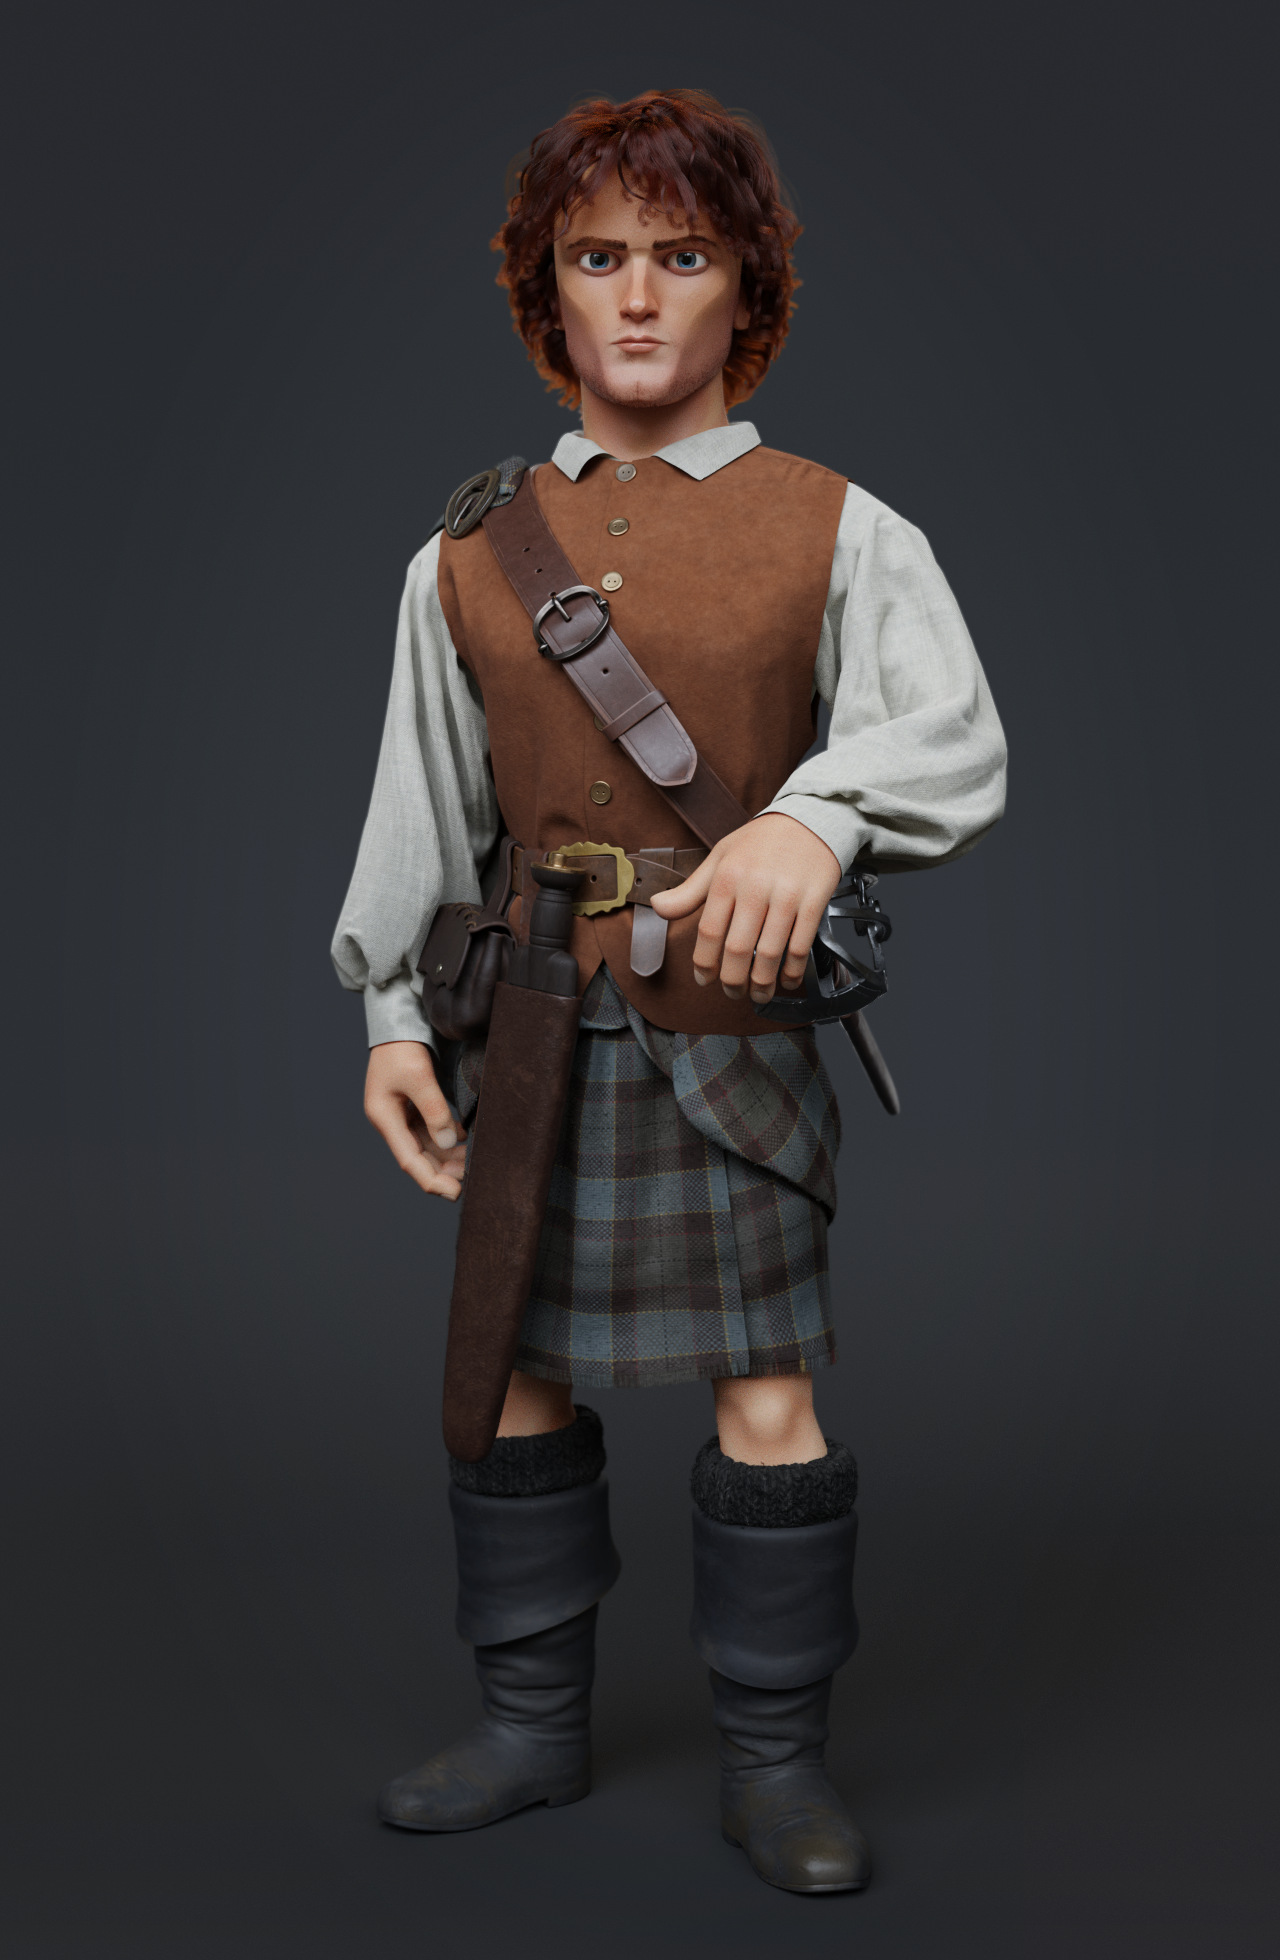 Jamie Fraser character by Isabelle Grandguillot